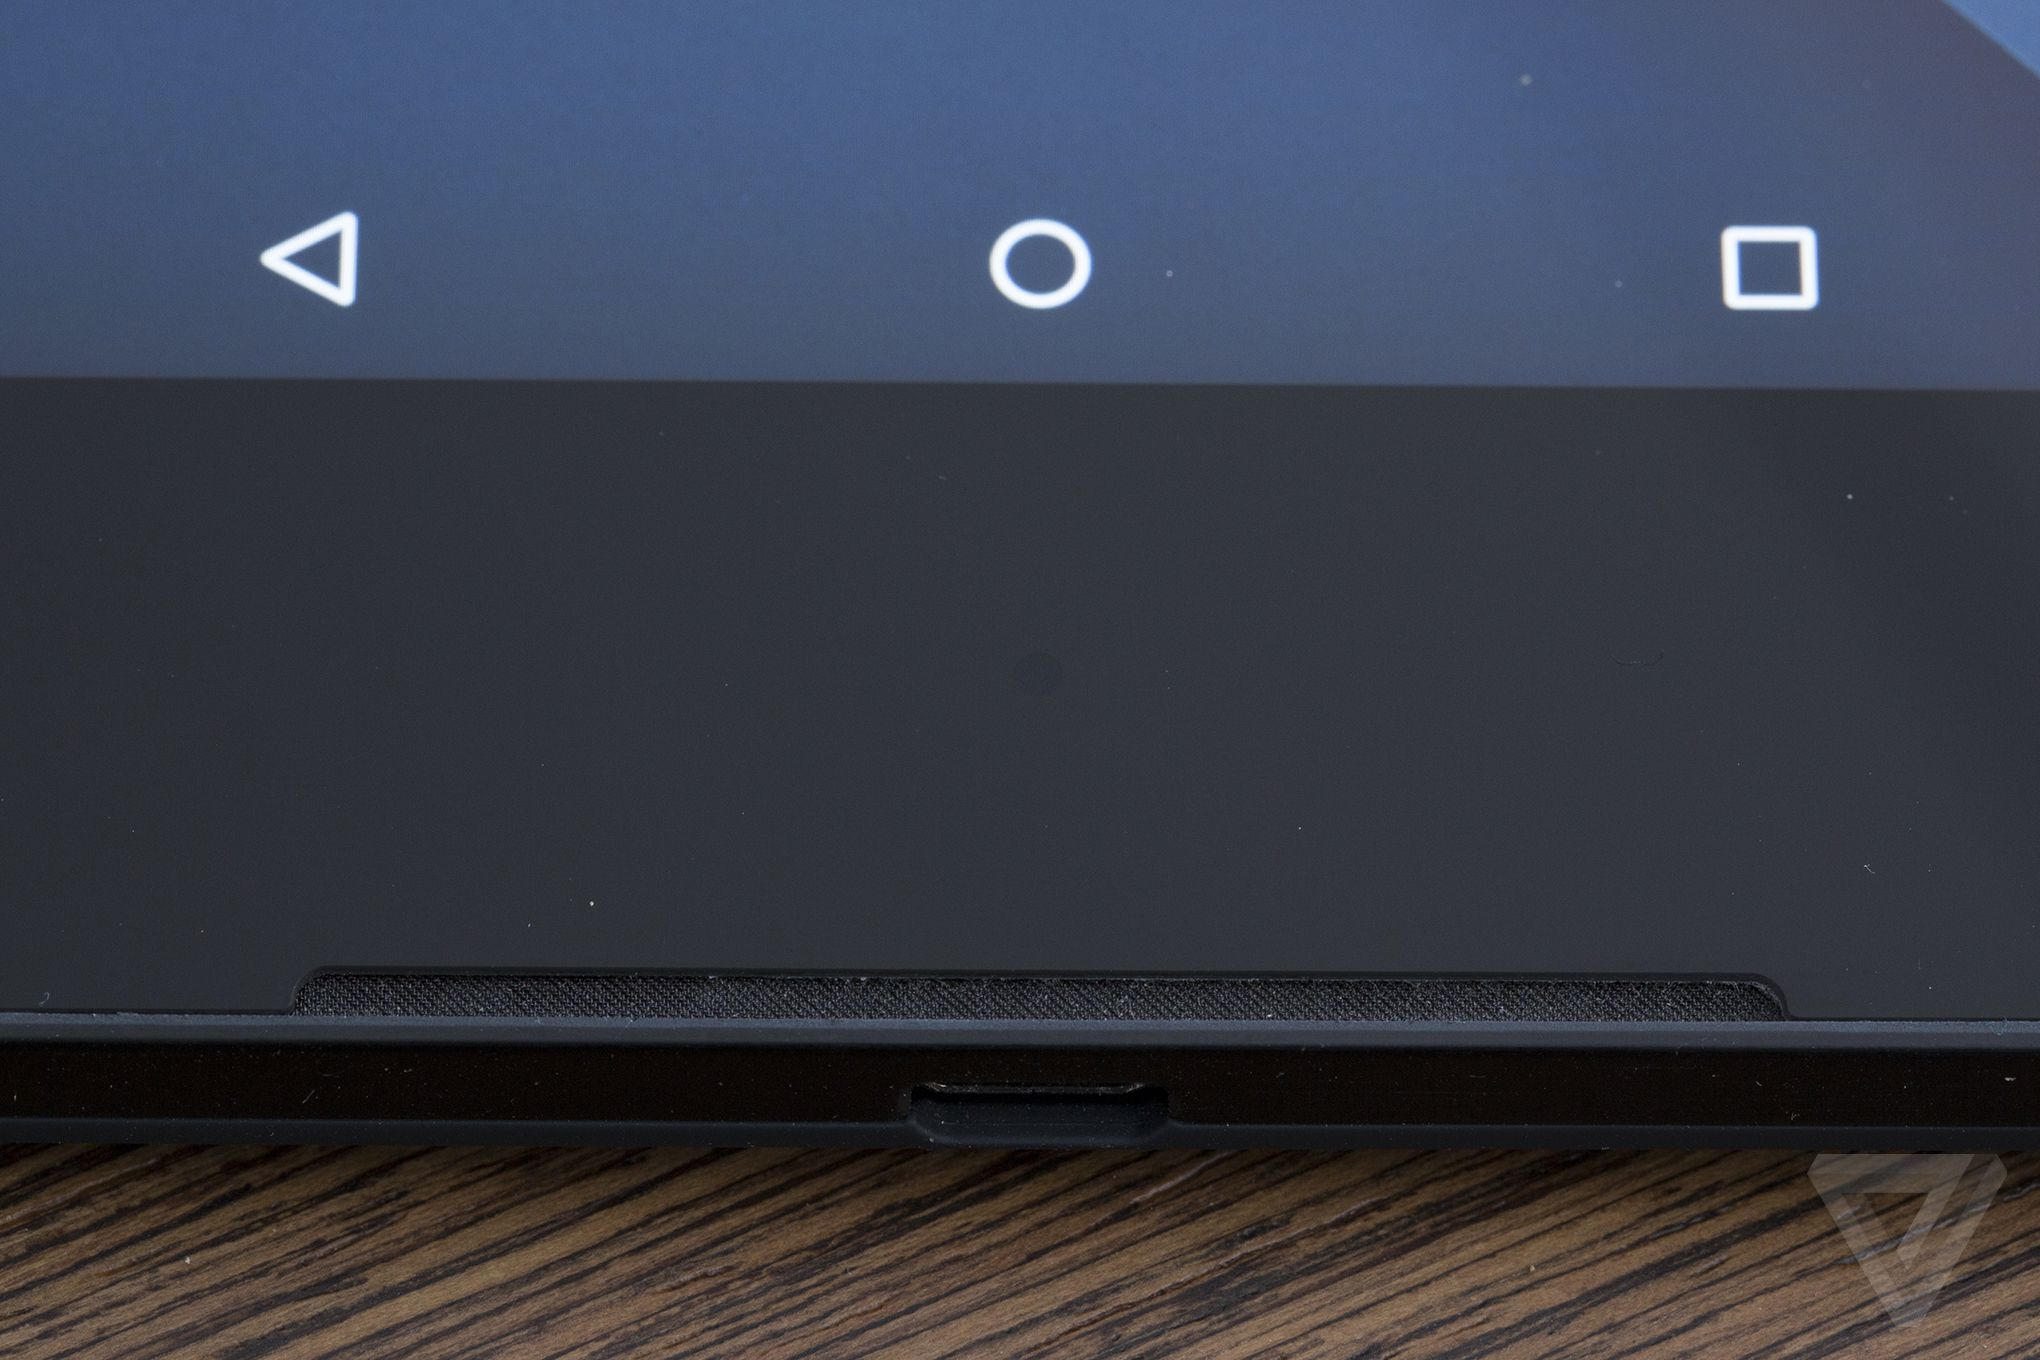 htc nexus 9. google commissioned htc to build the nexus 9, but it looks so similar last year\u0027s lg-made 5 that it\u0027s very clear led design direction htc 9